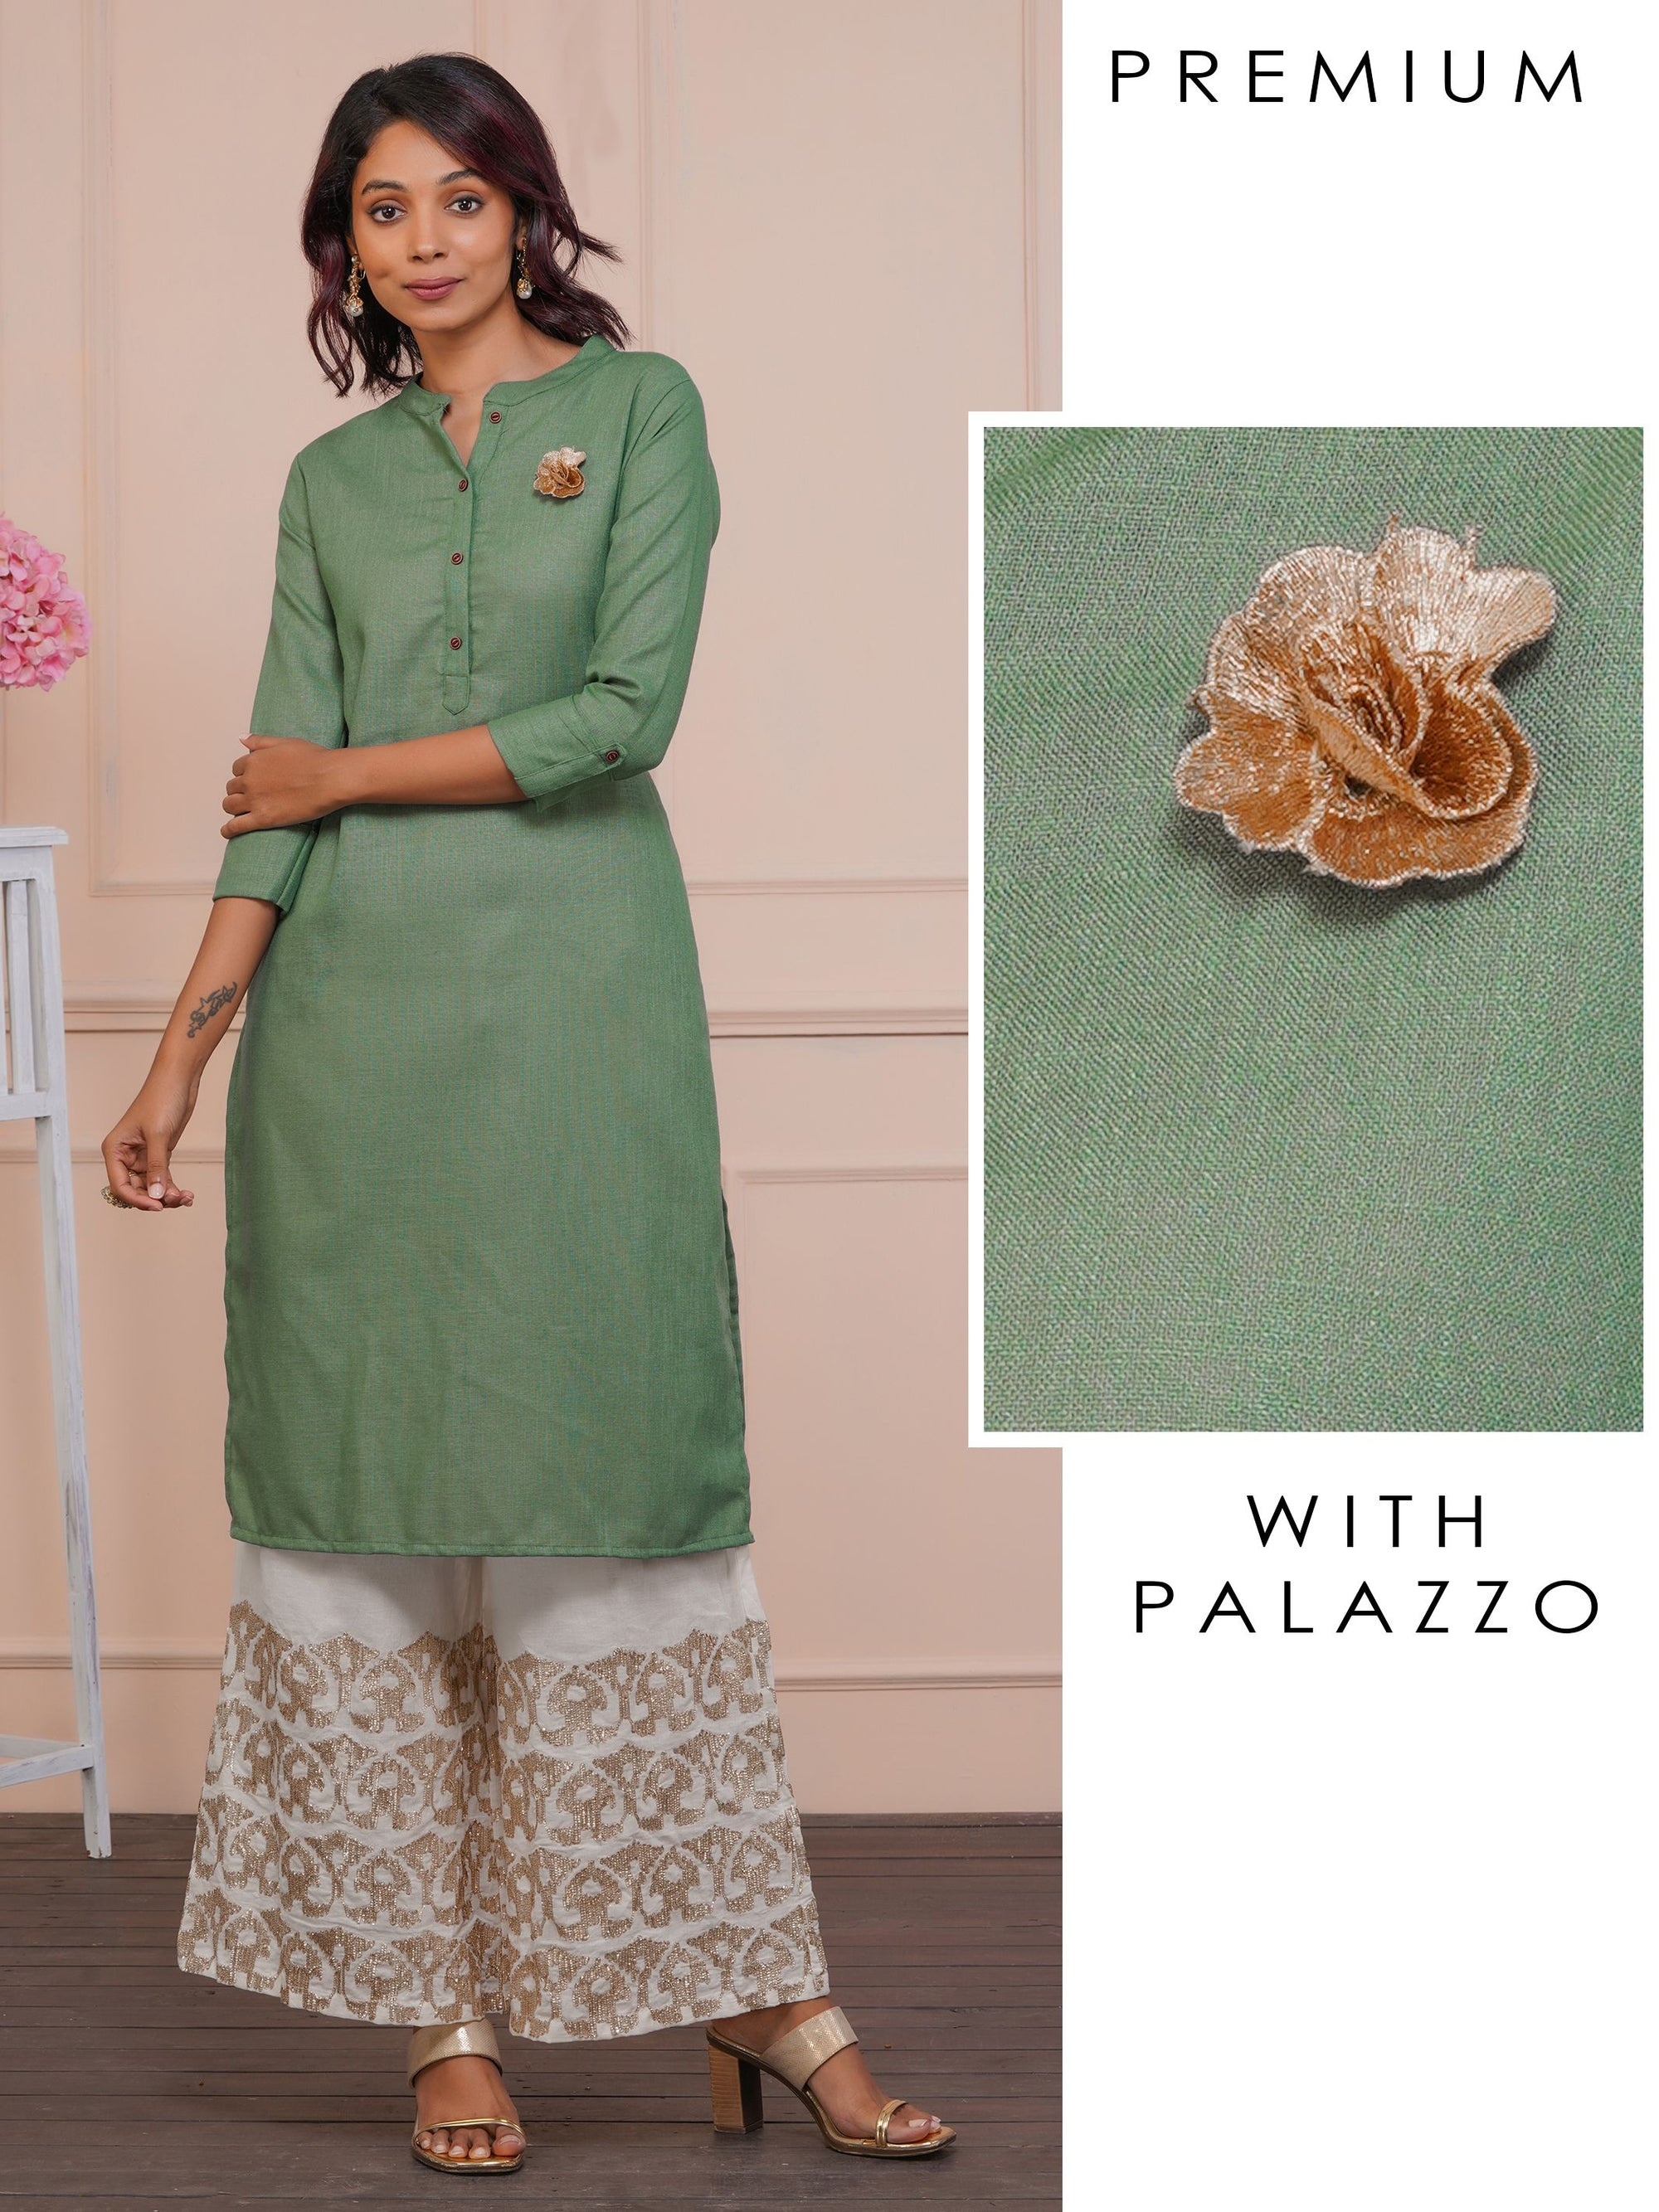 Gold Zari Floral Applique Kurta with Gota Embellished Palazzo Set - Jadesheen Green